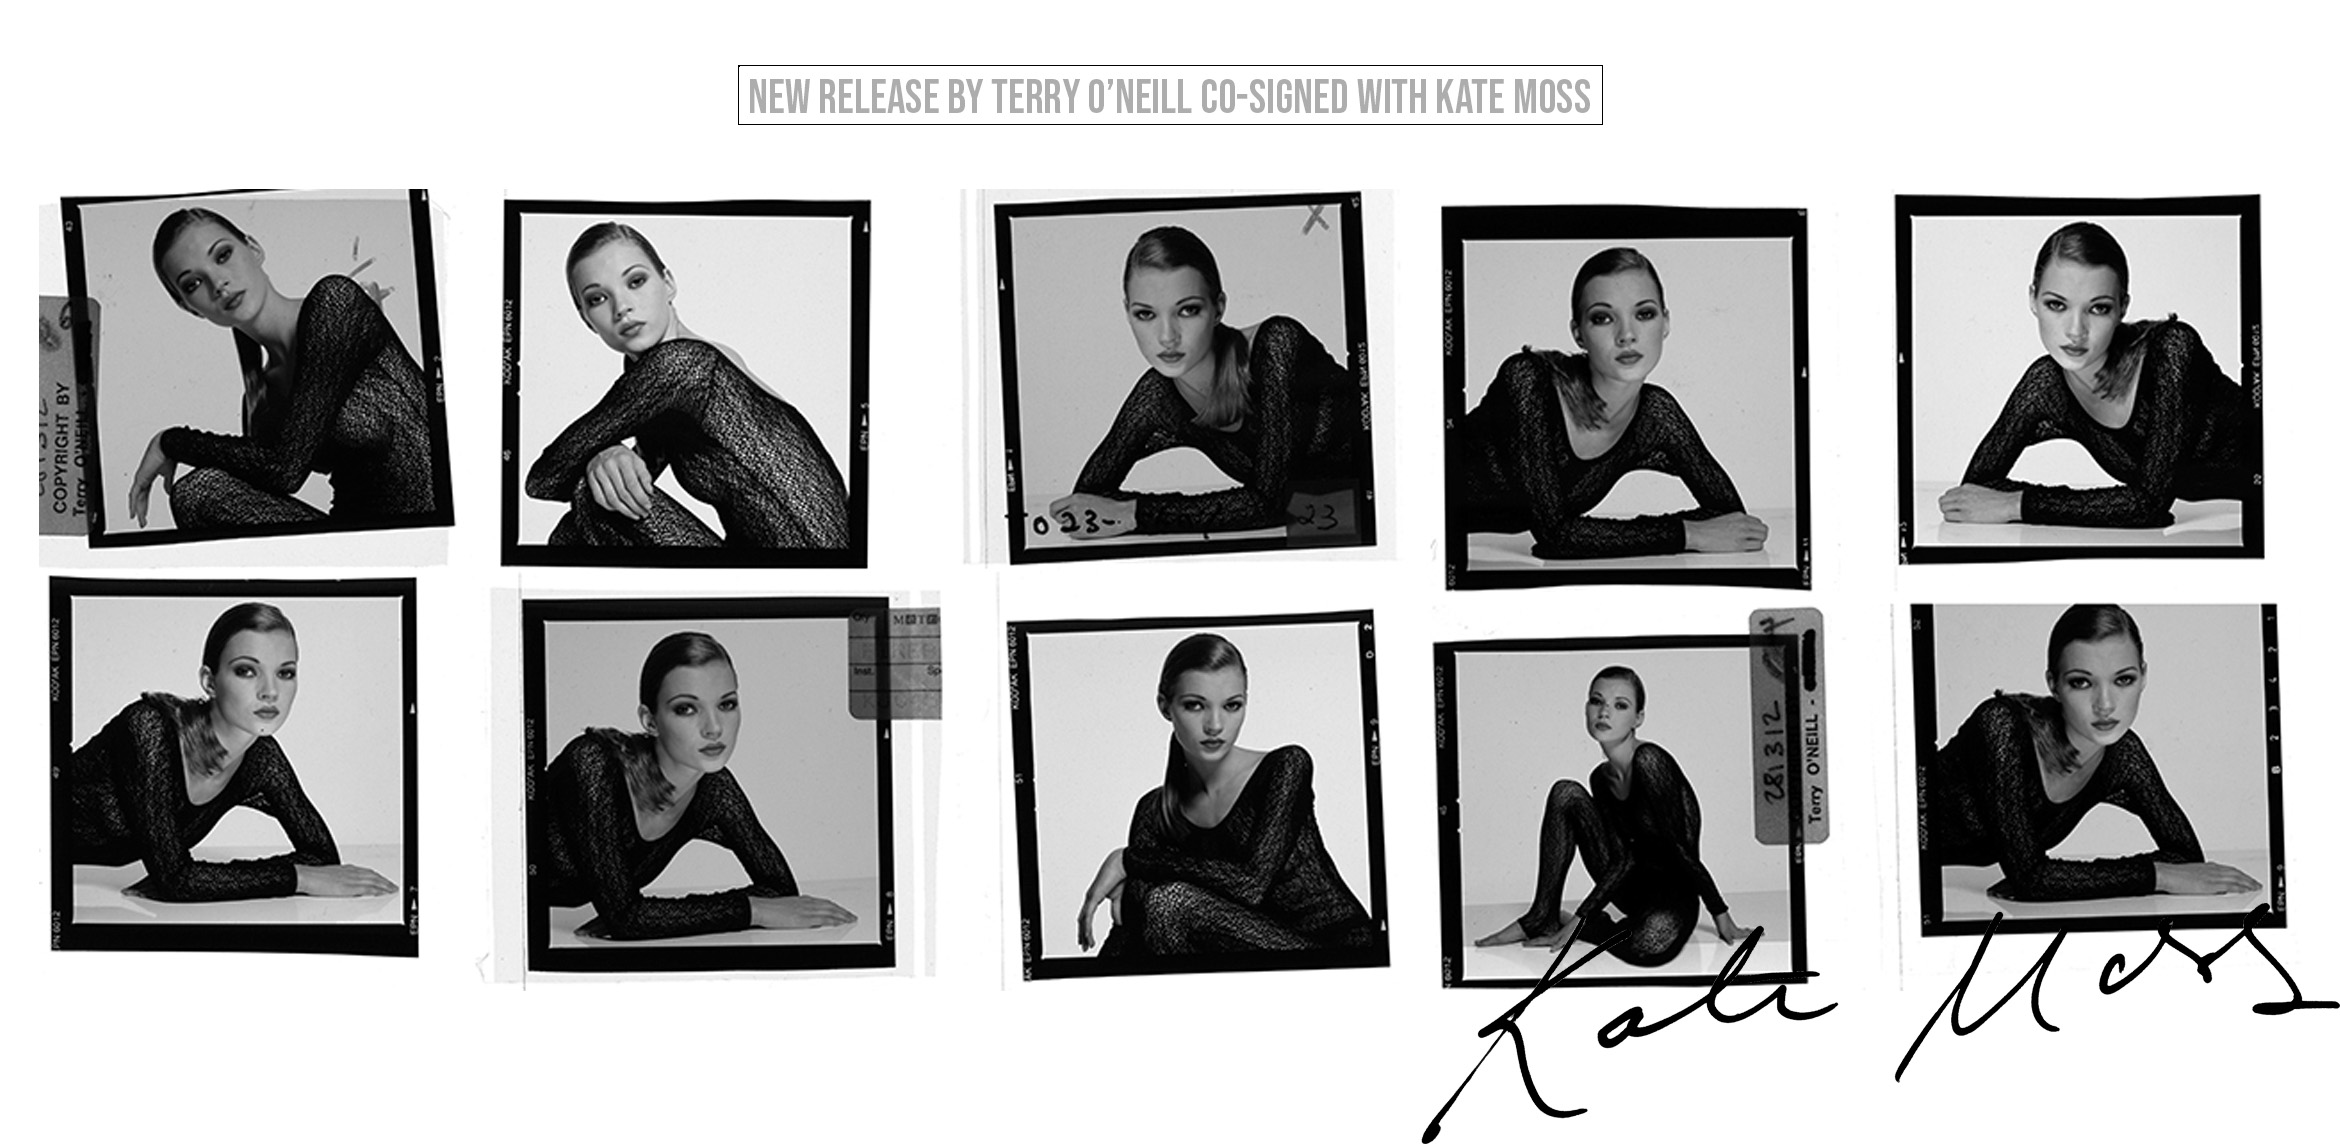 Kate-Moss-Silder-co-sign-terry-oneill